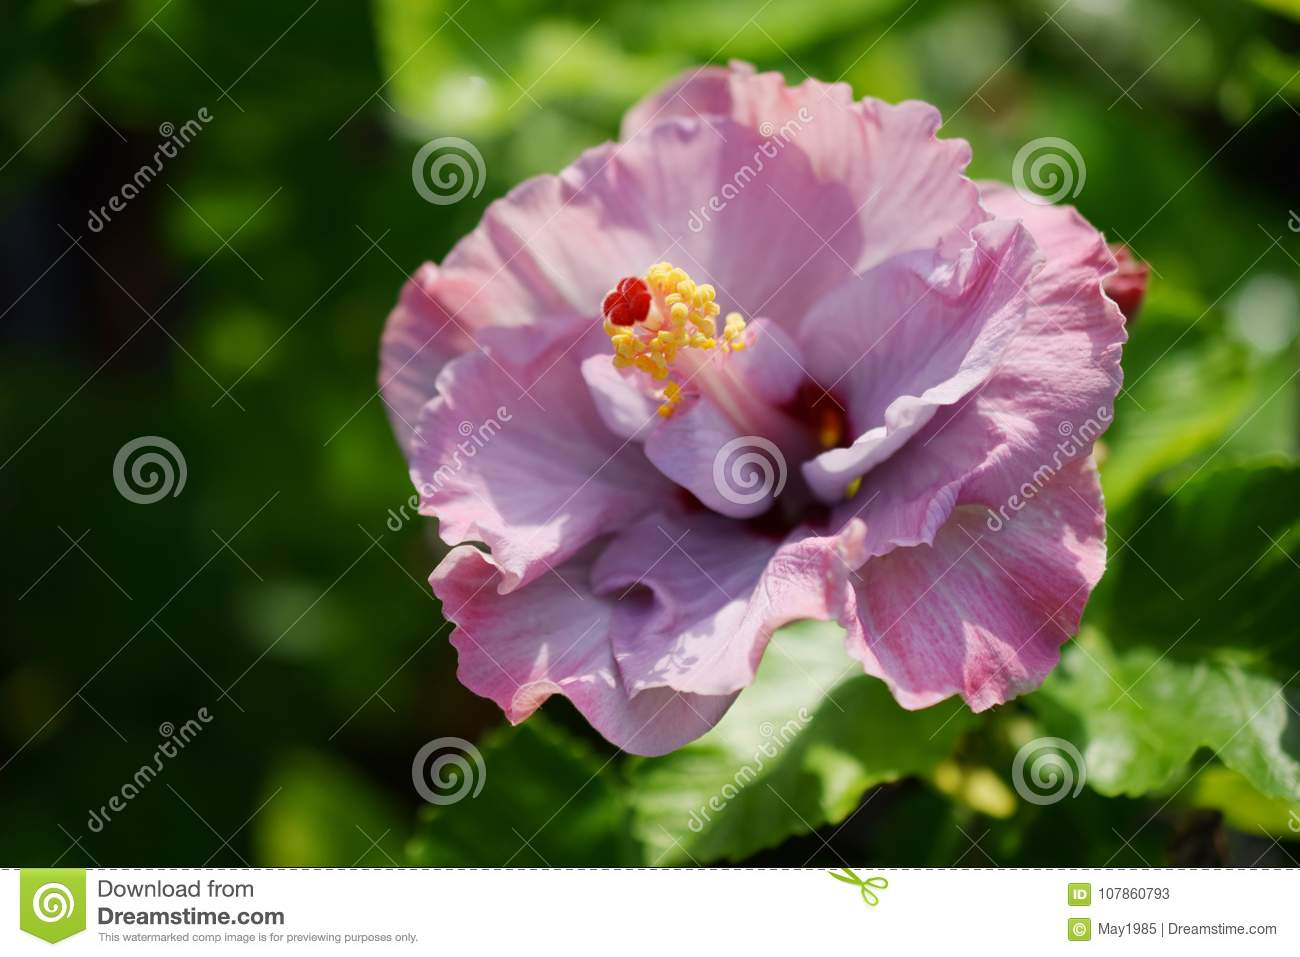 Close up of pink hibiscus flower on green nature background stock download close up of pink hibiscus flower on green nature background stock image image of izmirmasajfo